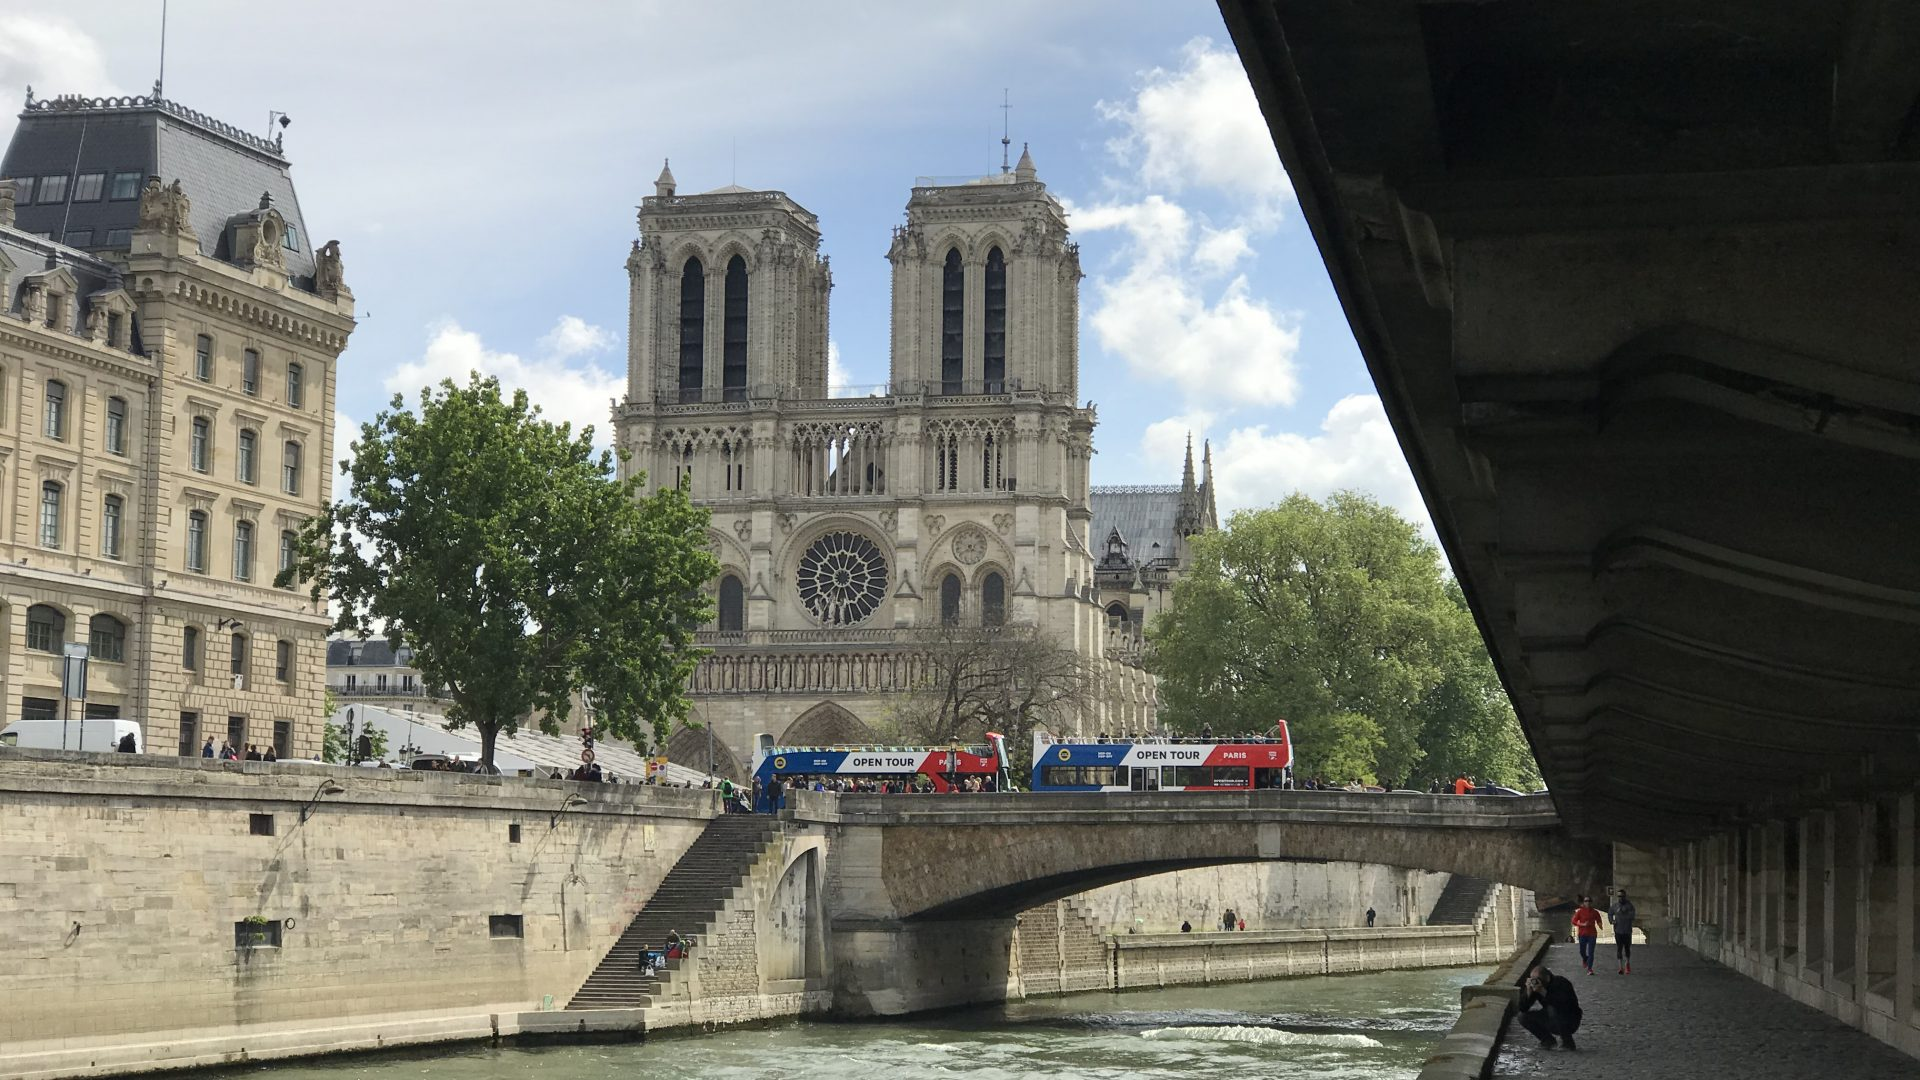 Paris - The 6th or 16th